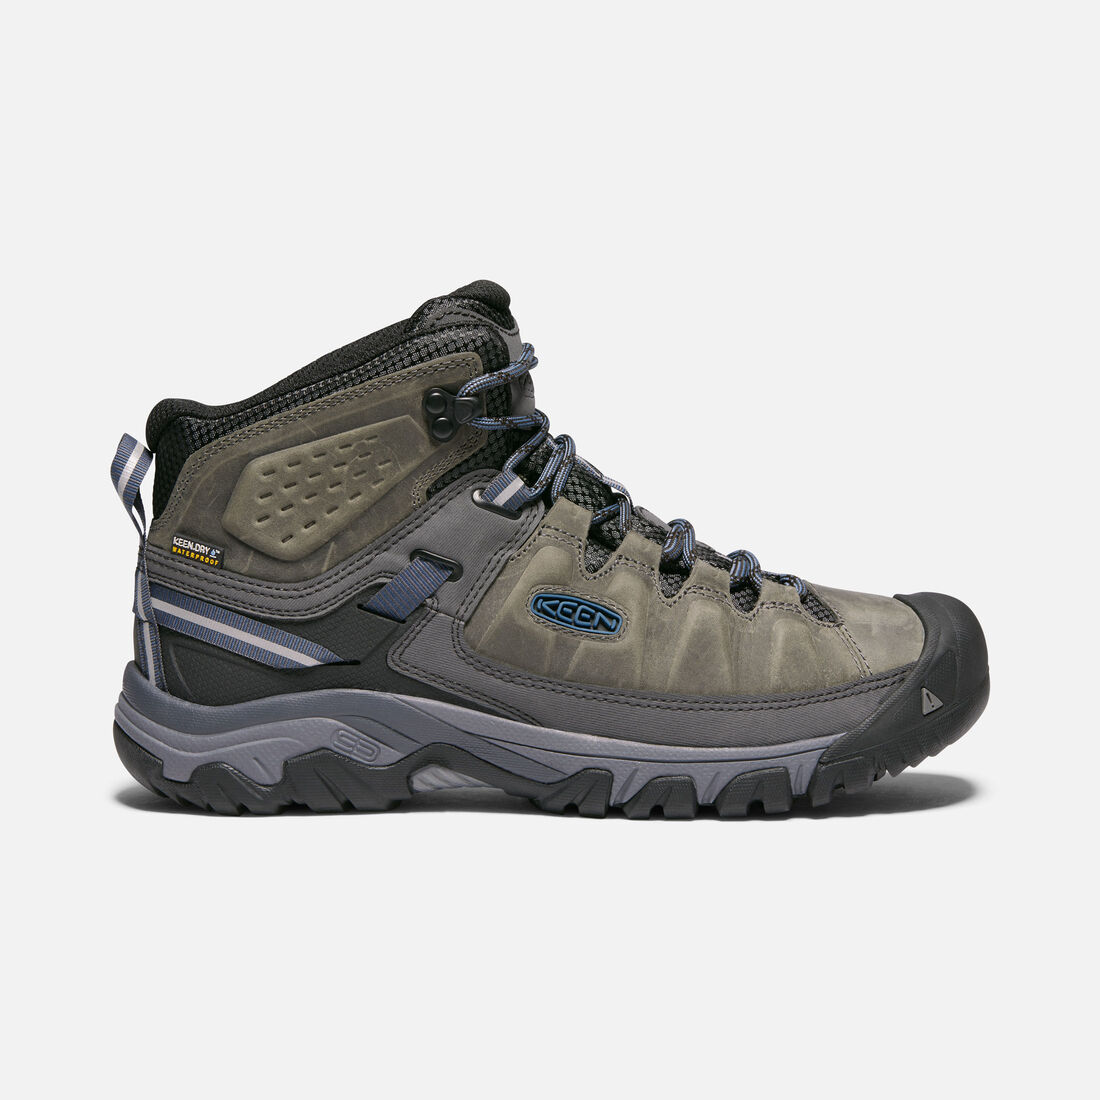 Men's TARGHEE III Waterproof Mid in STEEL GREY/CAPTAIN'S BLUE - large view.